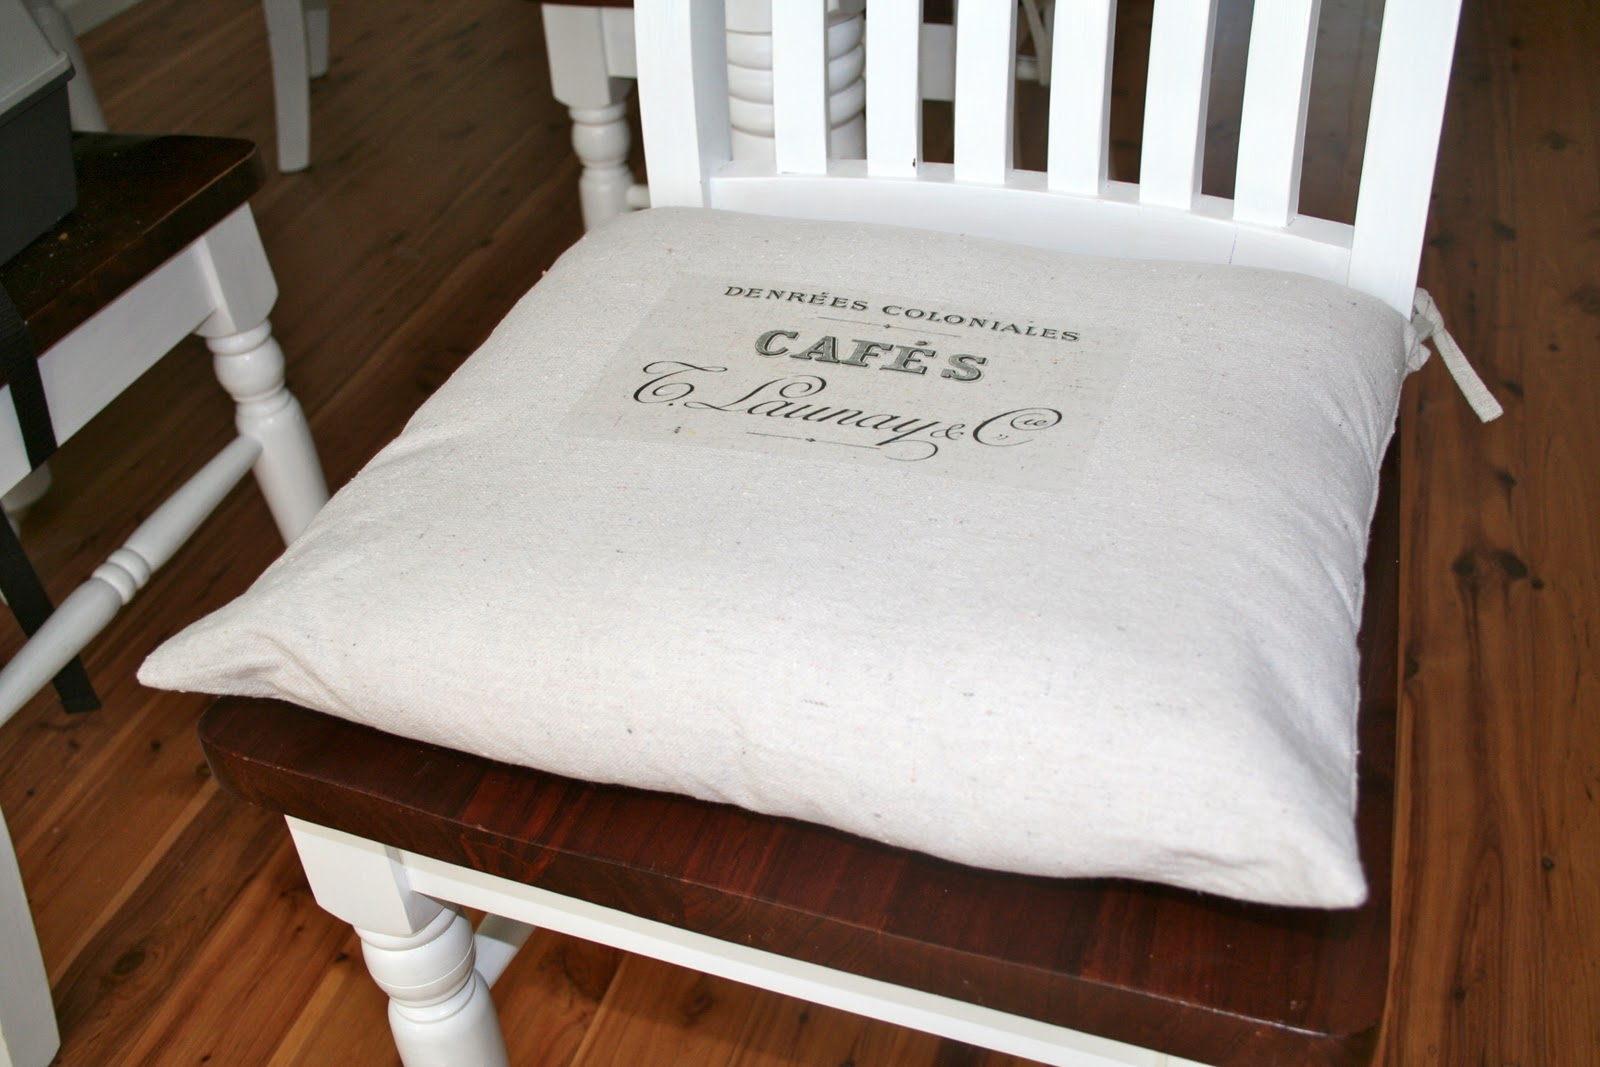 chair cushions with tie backs flight simulator vintage cafe drop cloth back